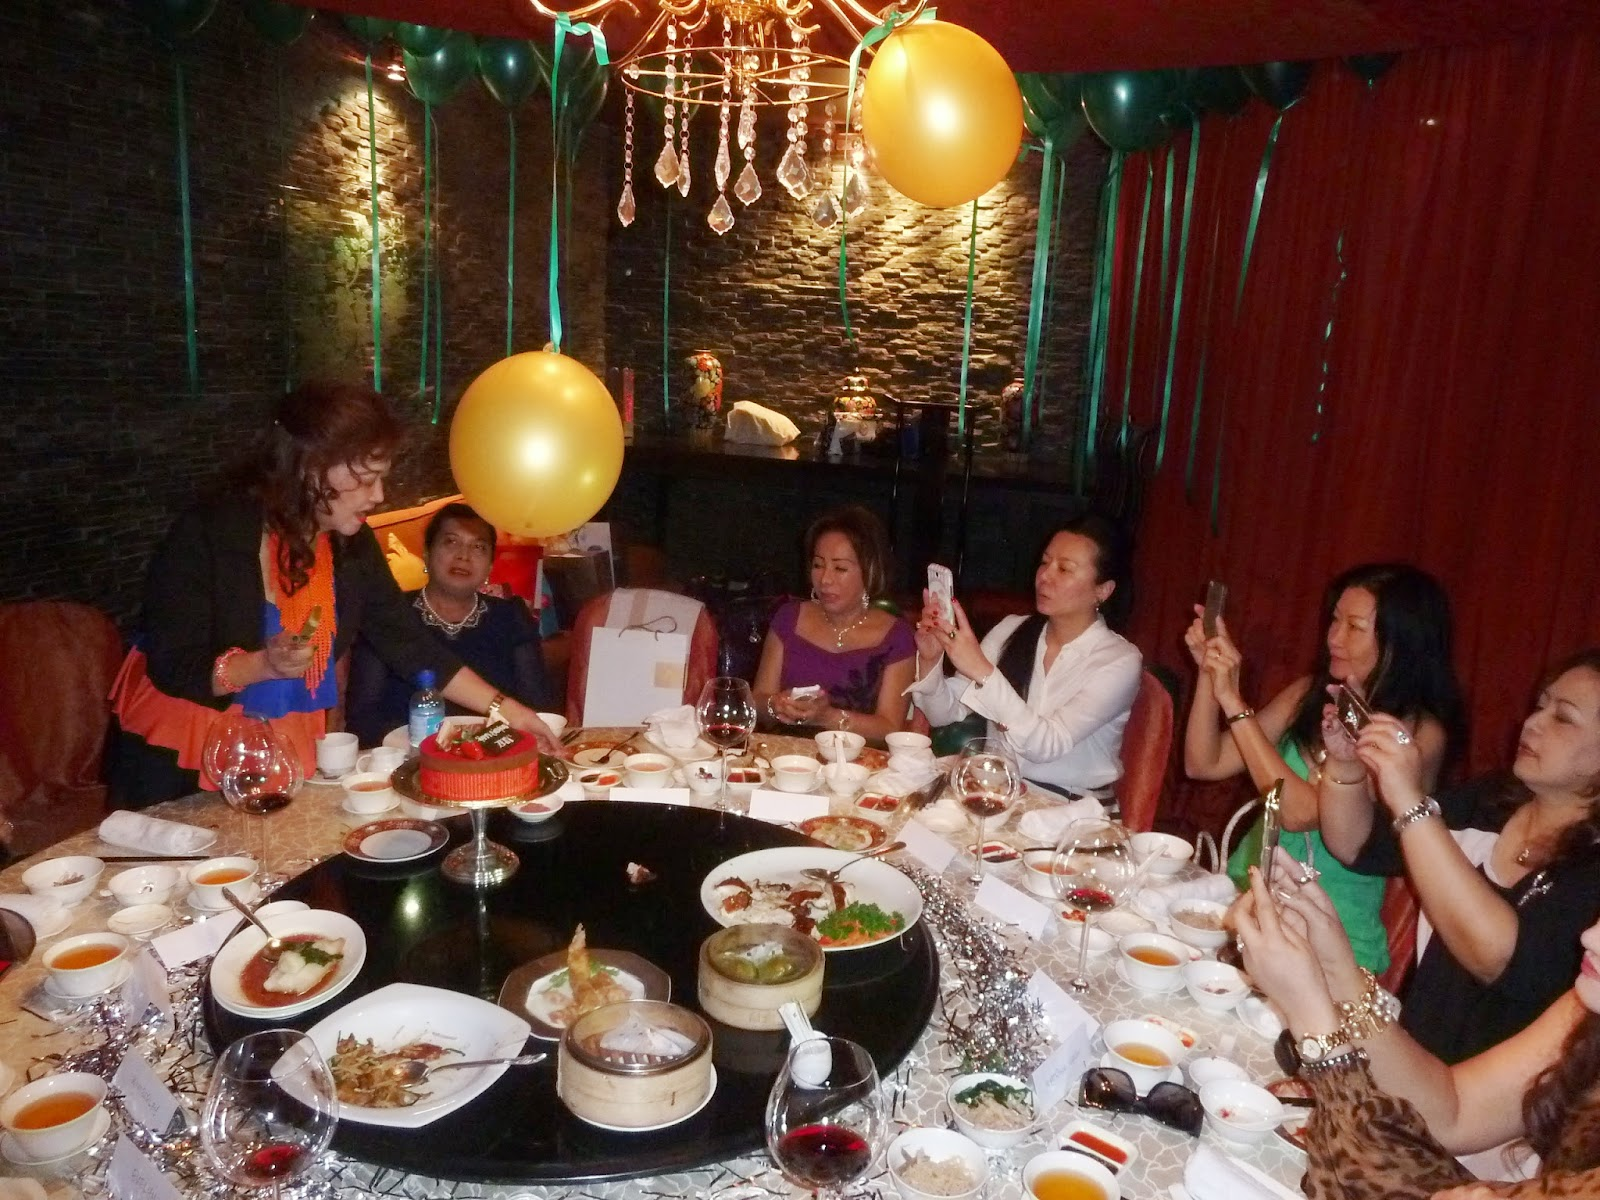 Birthday Cake For Zeny ~ Kee hua chee live zeny ladores celebrates her th birthday on september in grand style